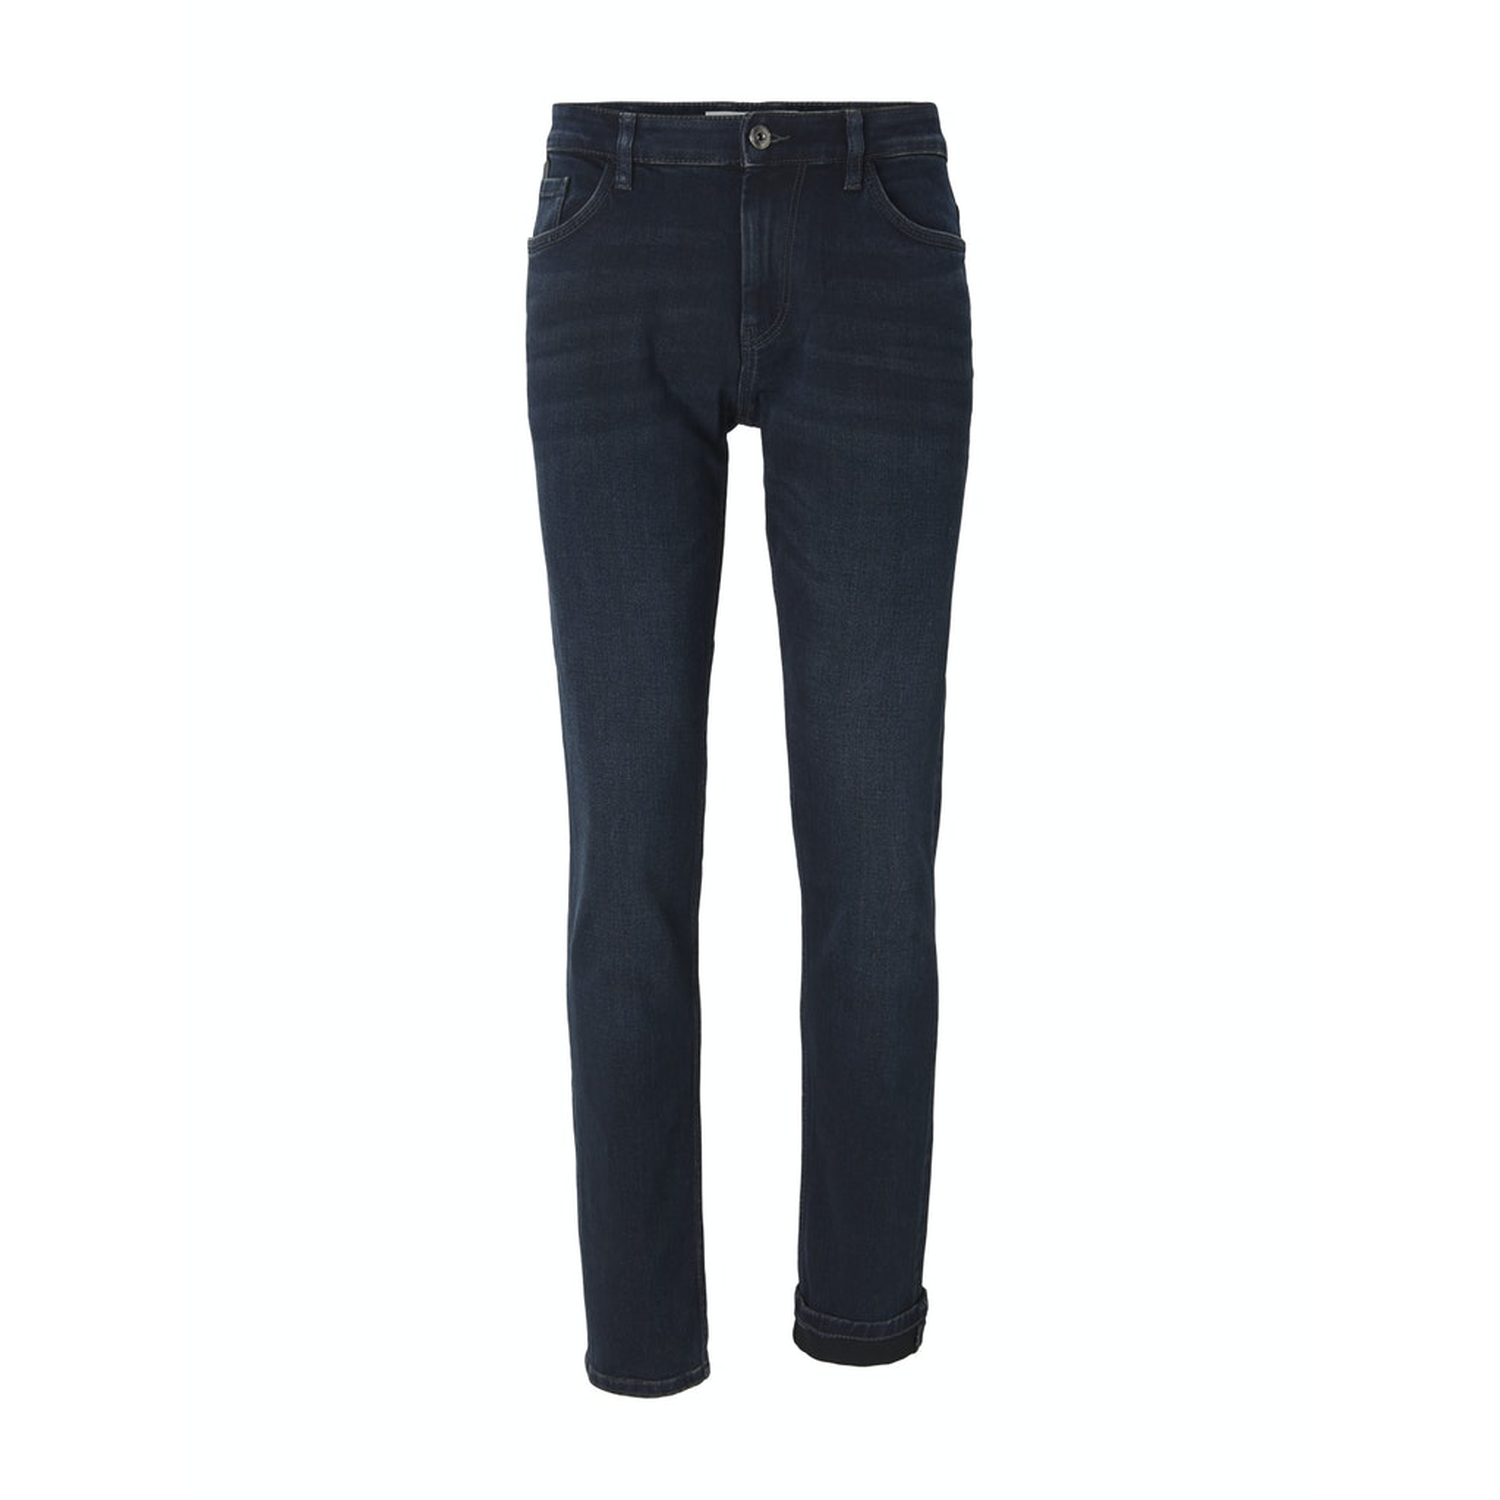 TOM TAILOR Josh Jeans blueblack slim